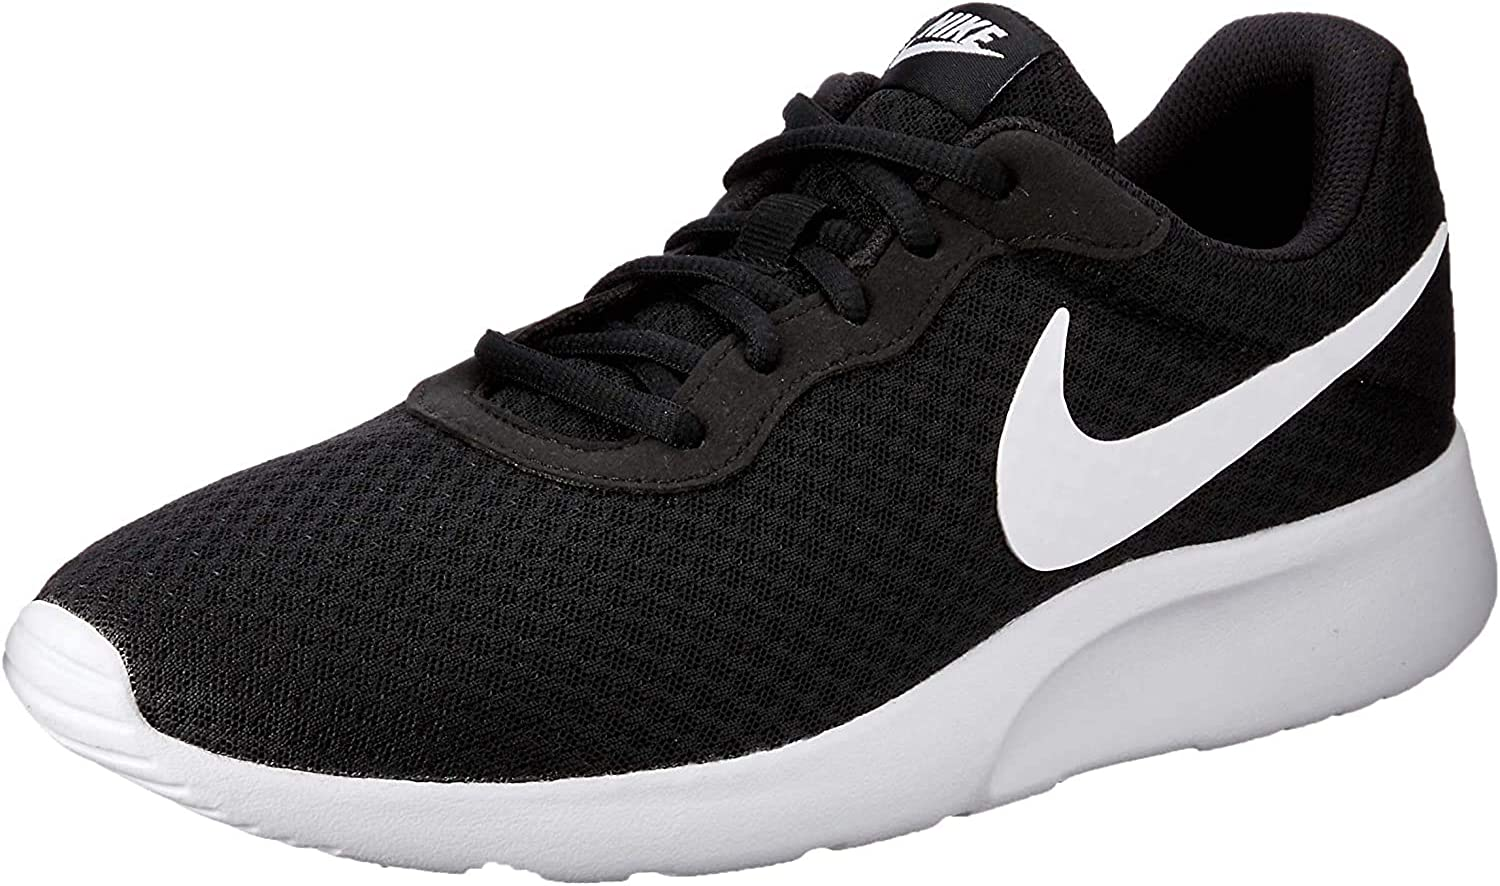 sagrado Misionero Reparador  Amazon.com | NIKE Men's Tanjun Sneakers, Breathable Textile Uppers and  Comfortable Lightweight Cushioning | Road Running